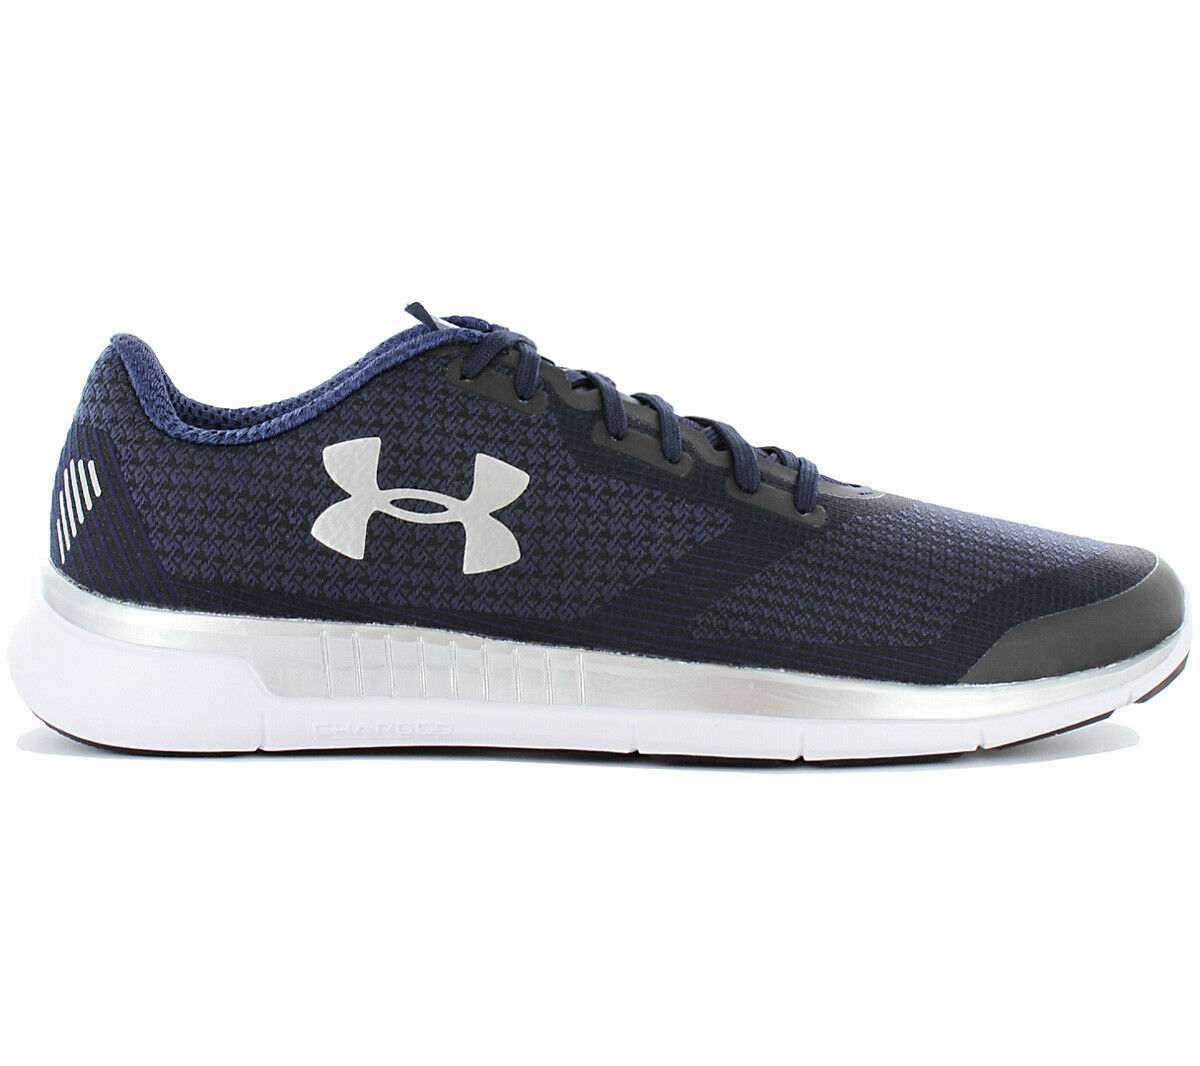 UA Under Armour Charged running Relámpago Zapatos Hombre Zapatillas running Charged 1285681-410 fd4088